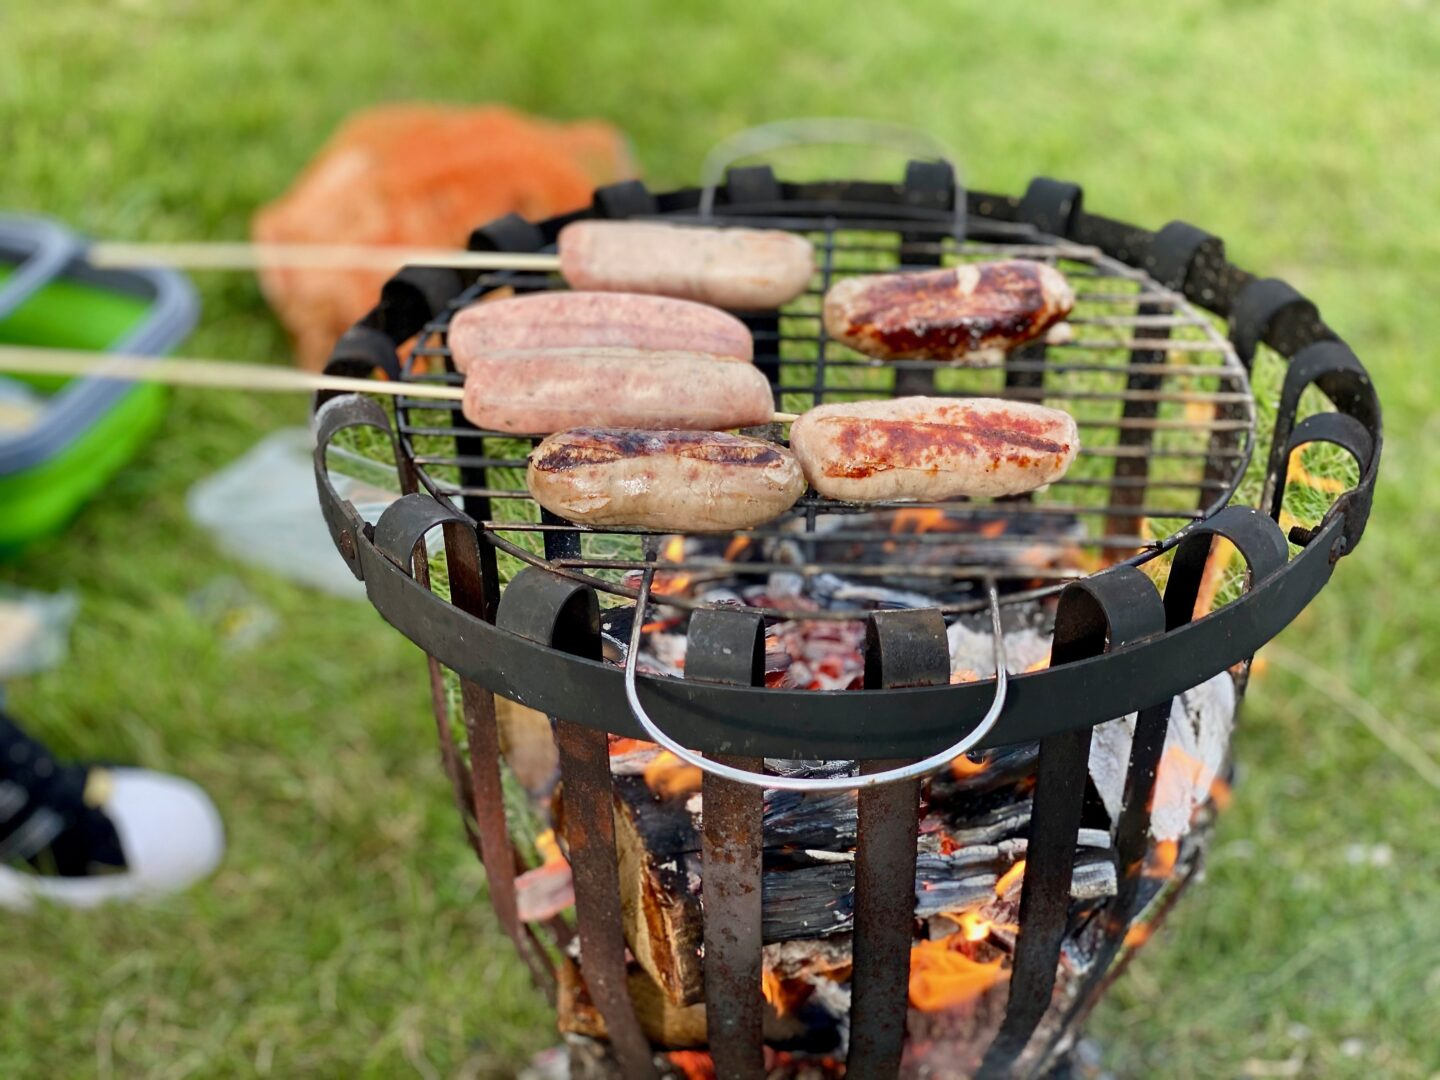 Sausages on a fire pit